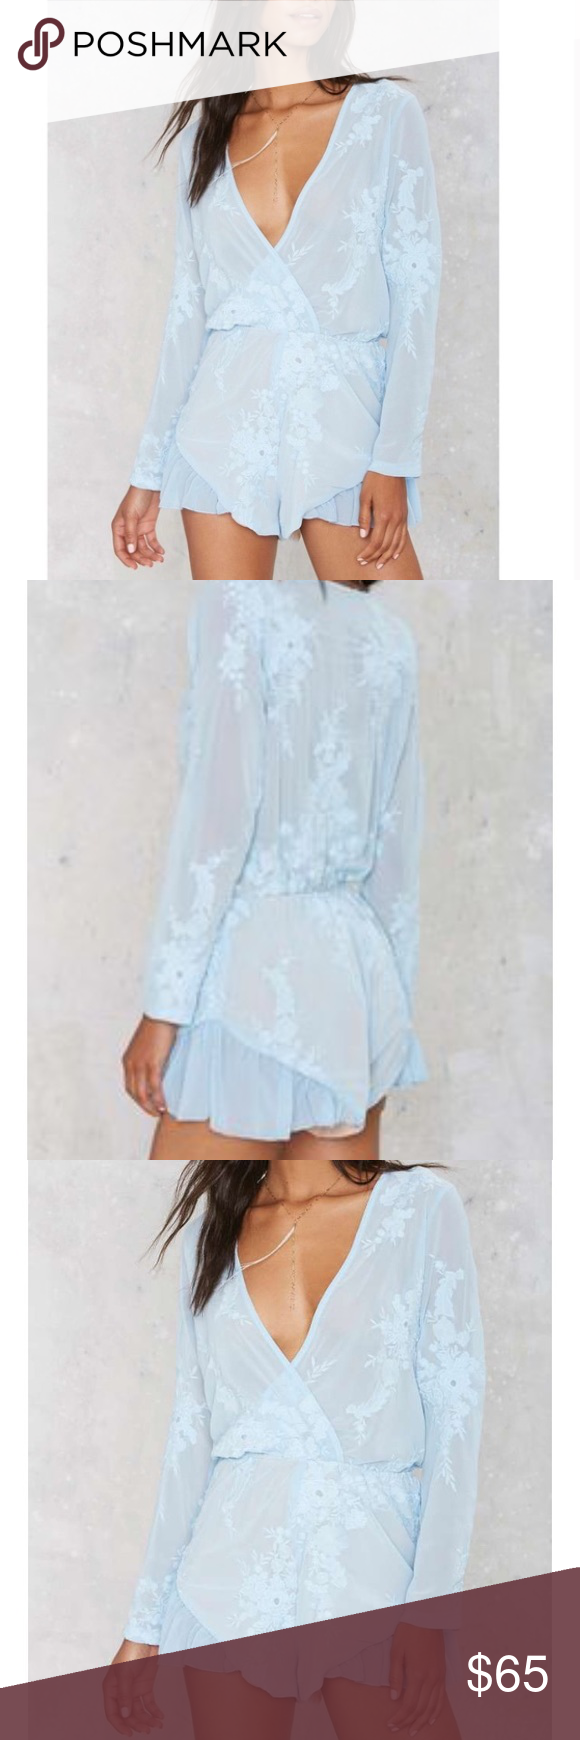 a1857966460 Powder Blue Embroidered Romper A beautiful powder   baby blue embroidered  floral romper from Lioness.